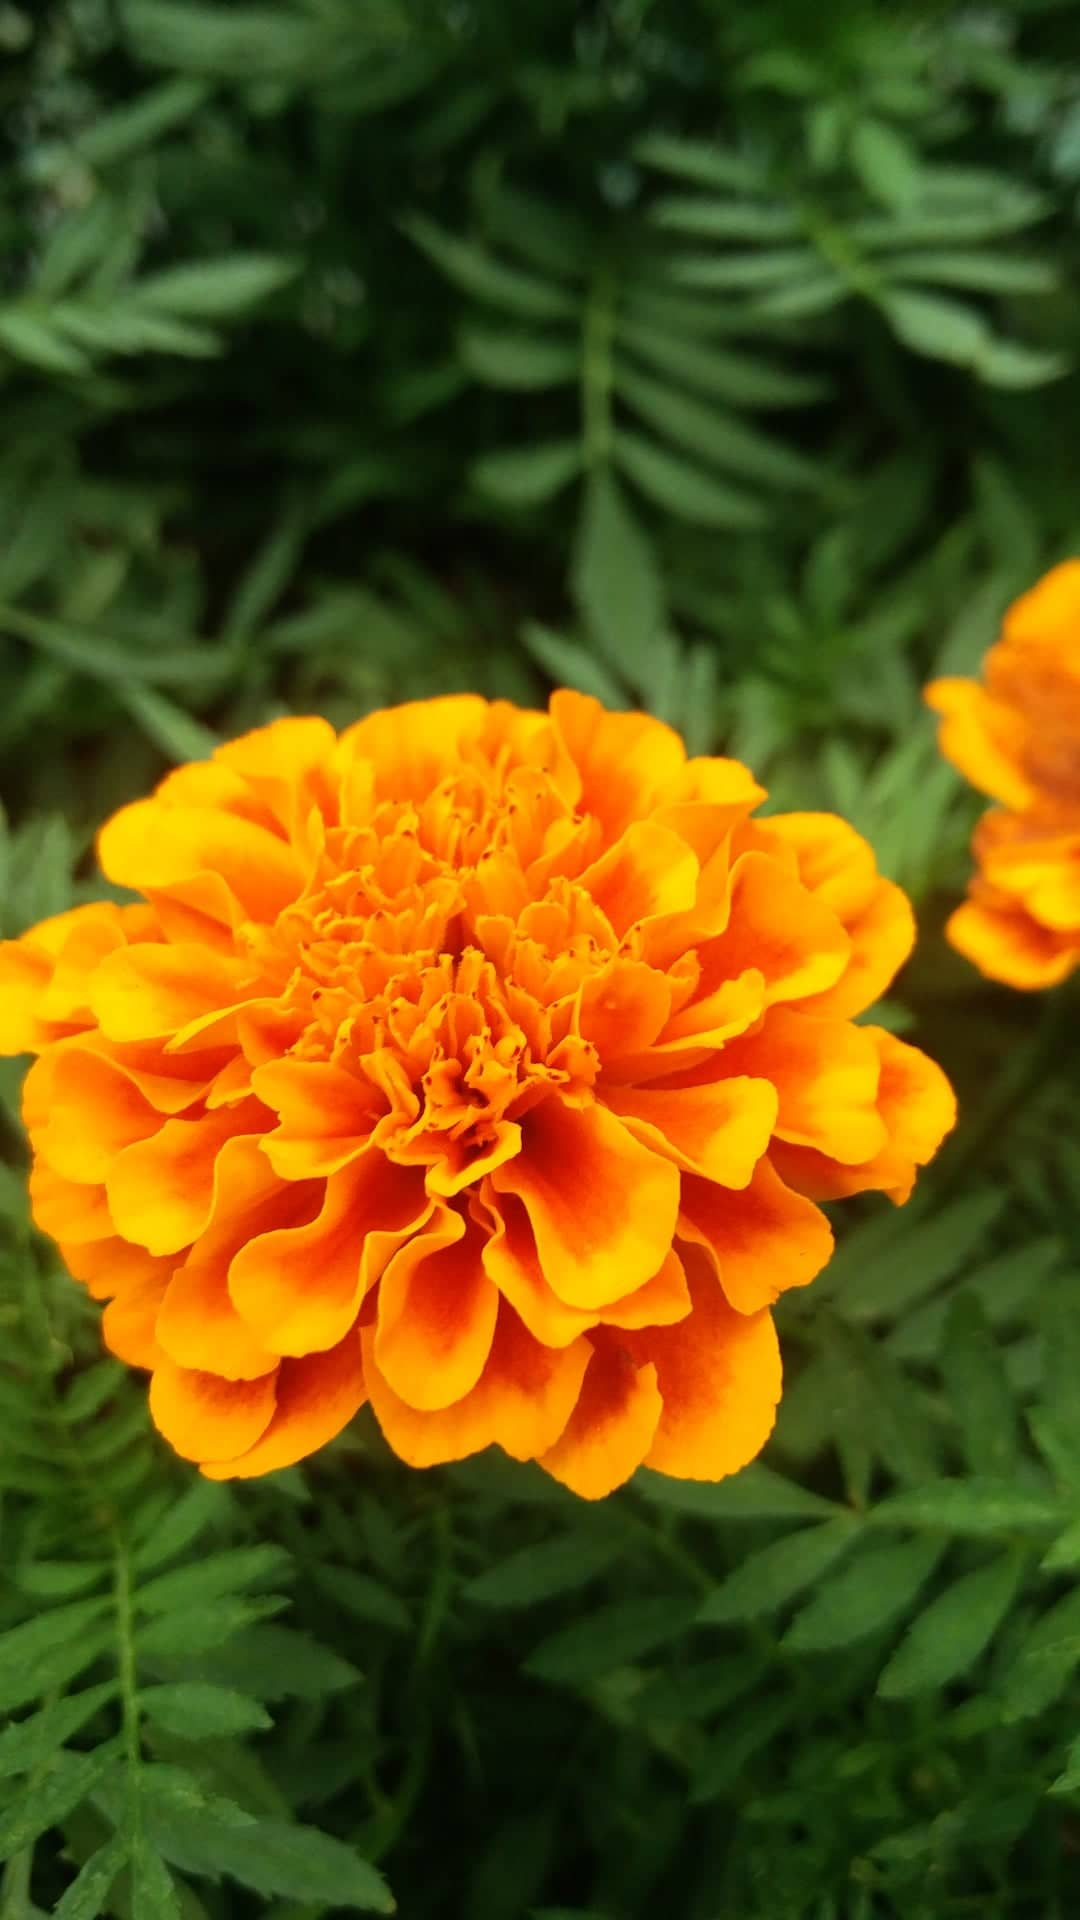 - The scientific name of marigold which is known as Tagetes, derives its name from the Etruscan God 'Tages,' the God of wisdom.